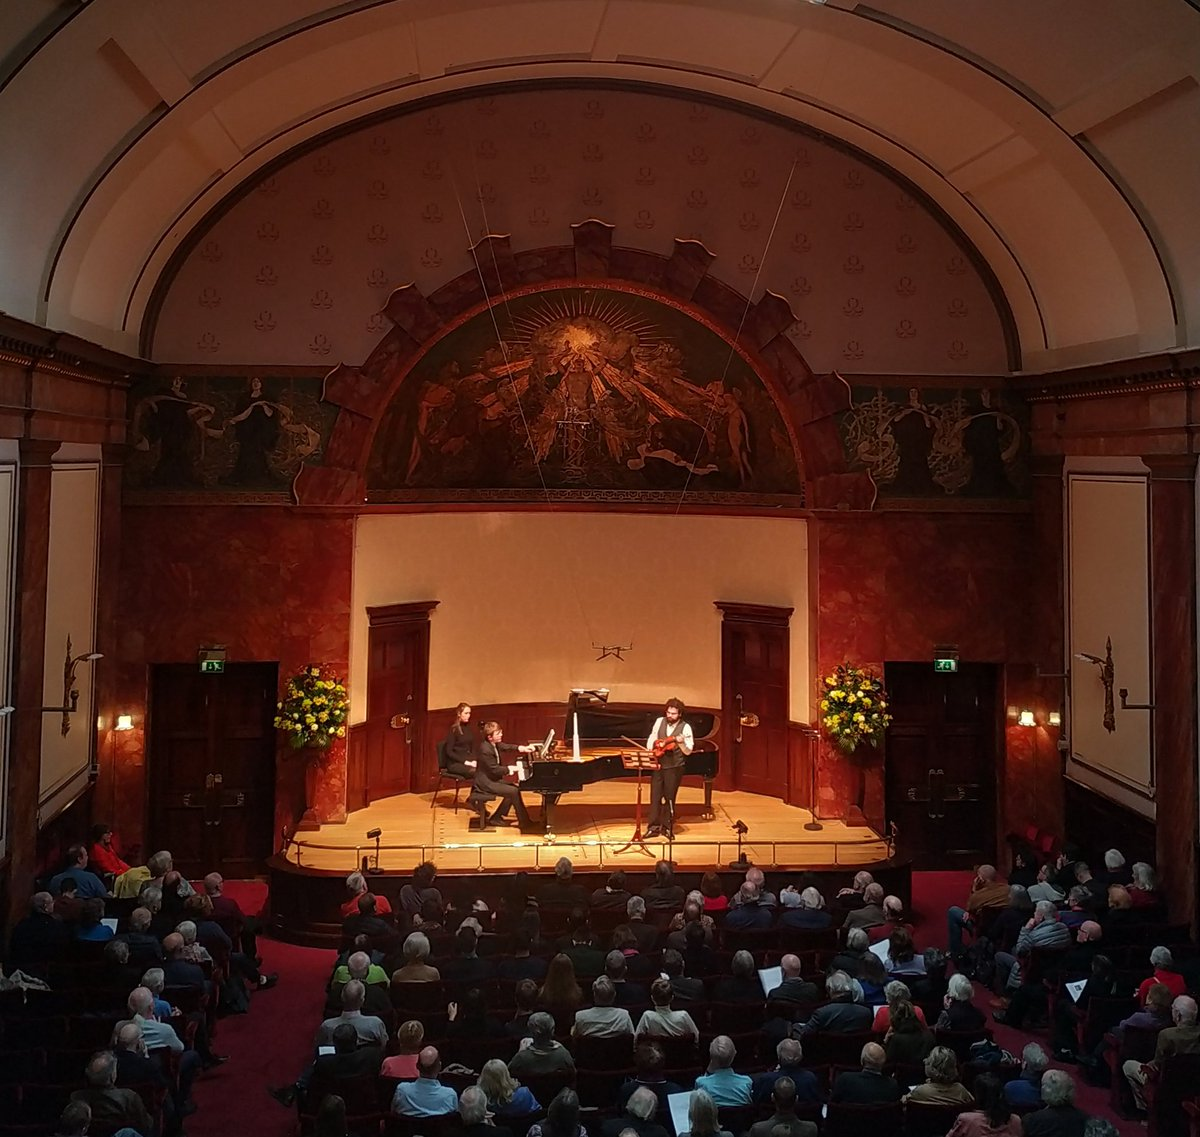 Fantastic first lunchtime concert of 2020 @wigmore_hall by @KadeshaViolin & @FilippoGorini